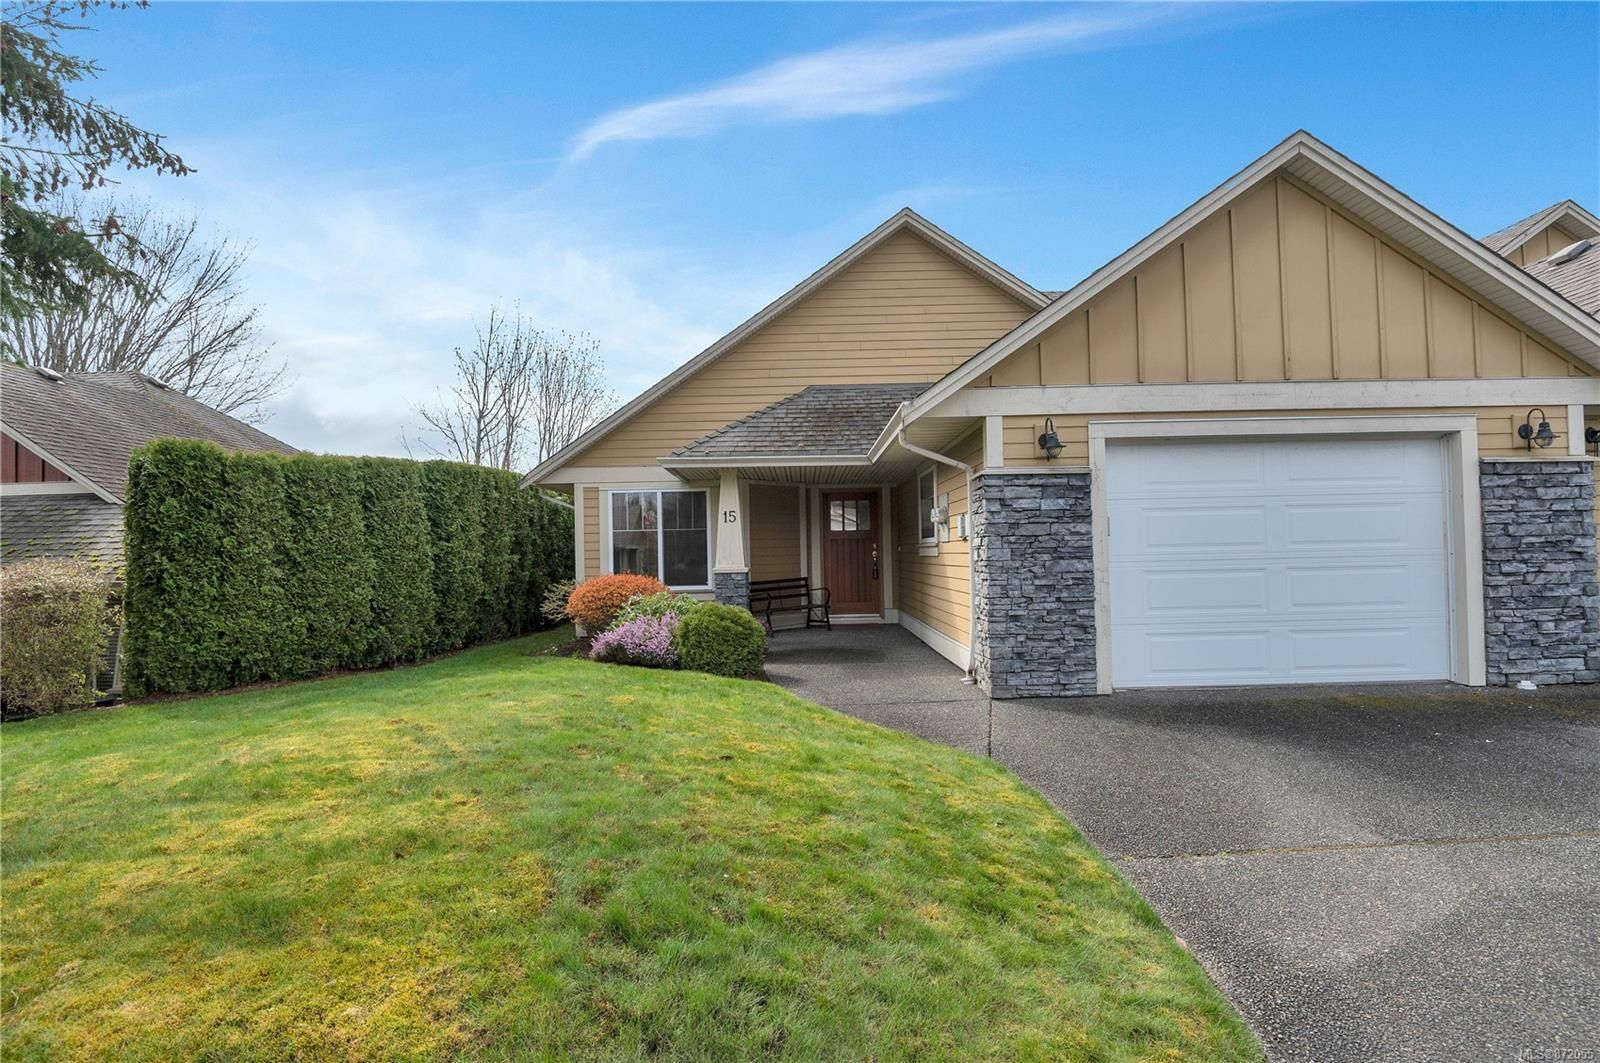 Main Photo: 15 769 Merecroft Rd in : CR Campbell River Central Row/Townhouse for sale (Campbell River)  : MLS®# 872055